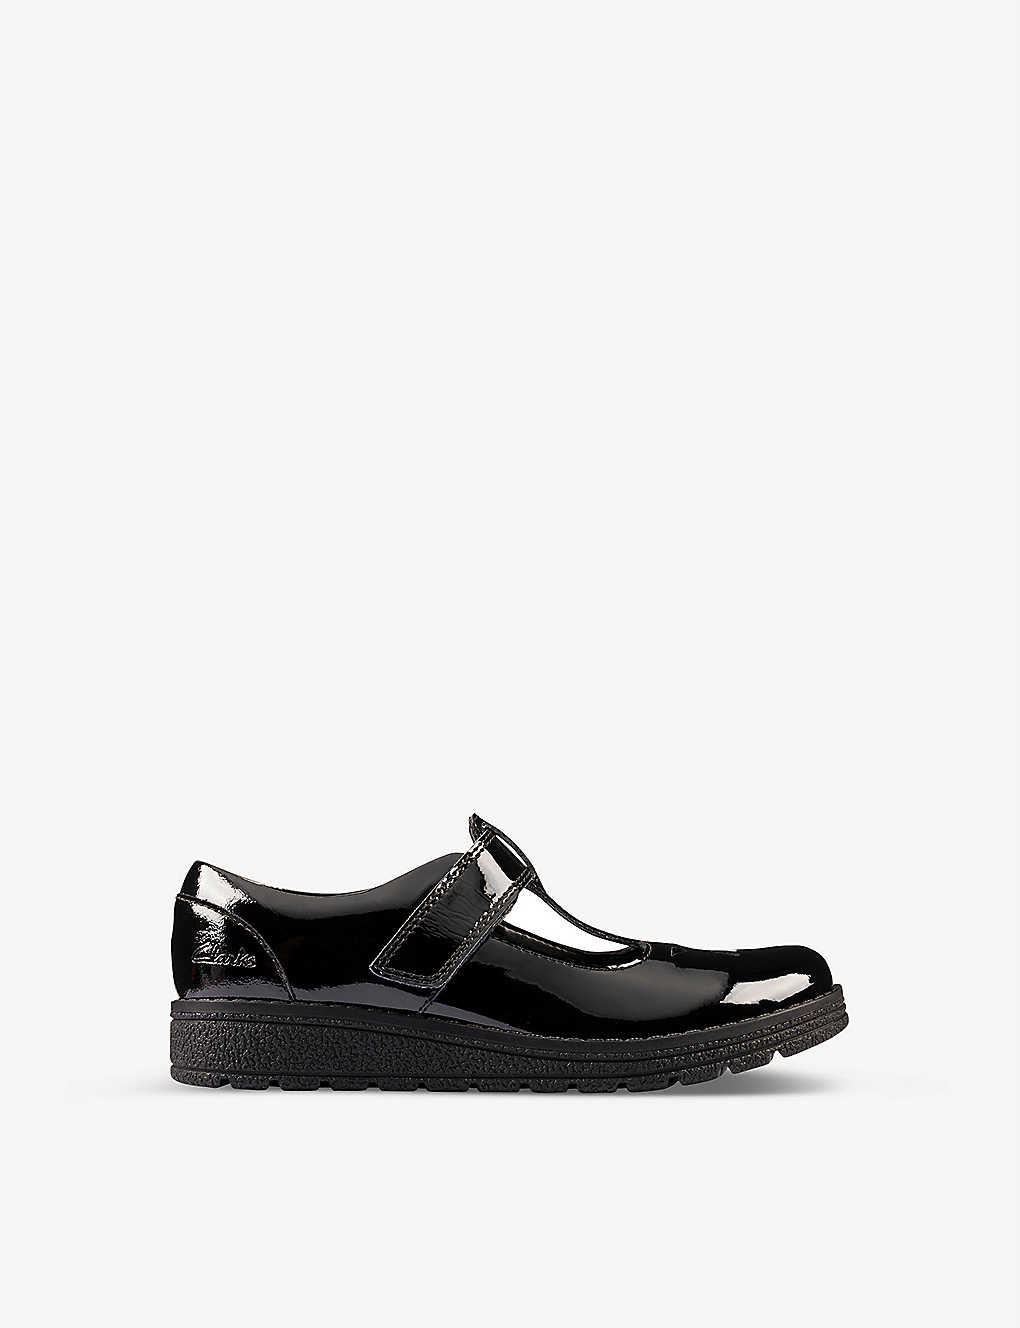 CLARKS: Mendip Joy patent leather shoes 5-8 years